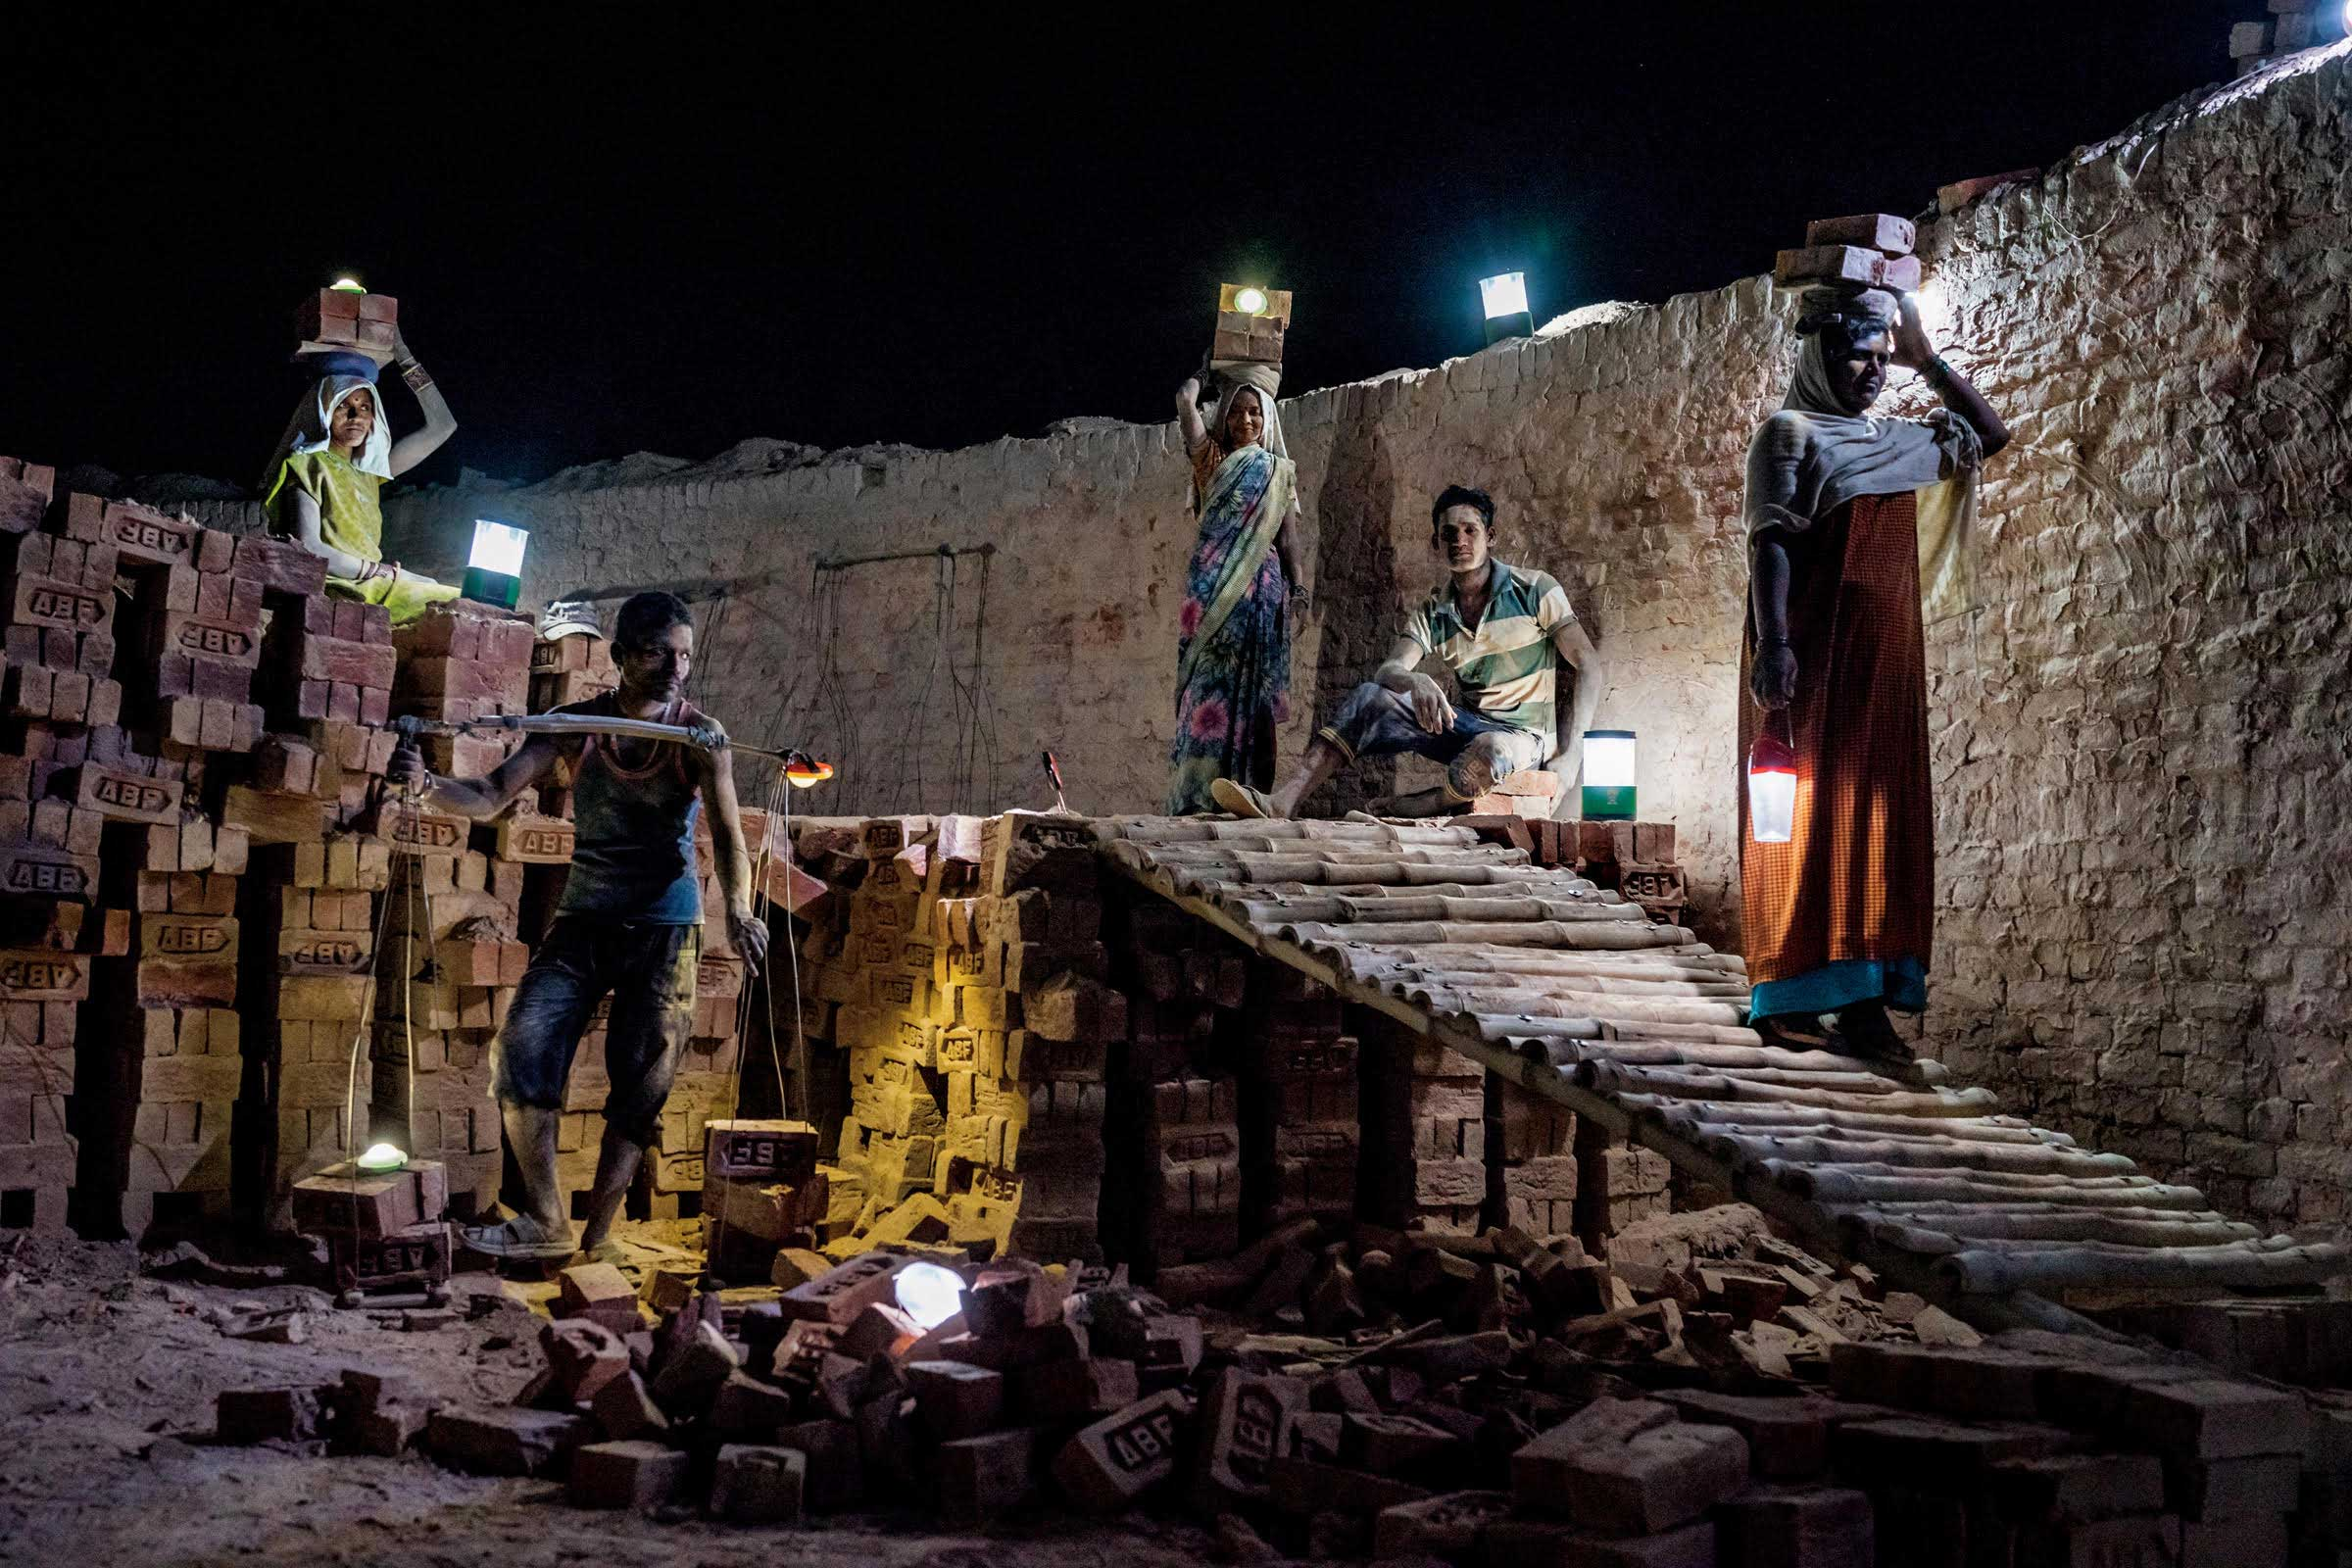 From the November issue of National Geographic magazine:  How Solar Lanterns Are Giving Power to the PeopleAt a brick kiln in India's rural state of Uttar Pradesh, workers use solar lanterns to illuminate their paths.